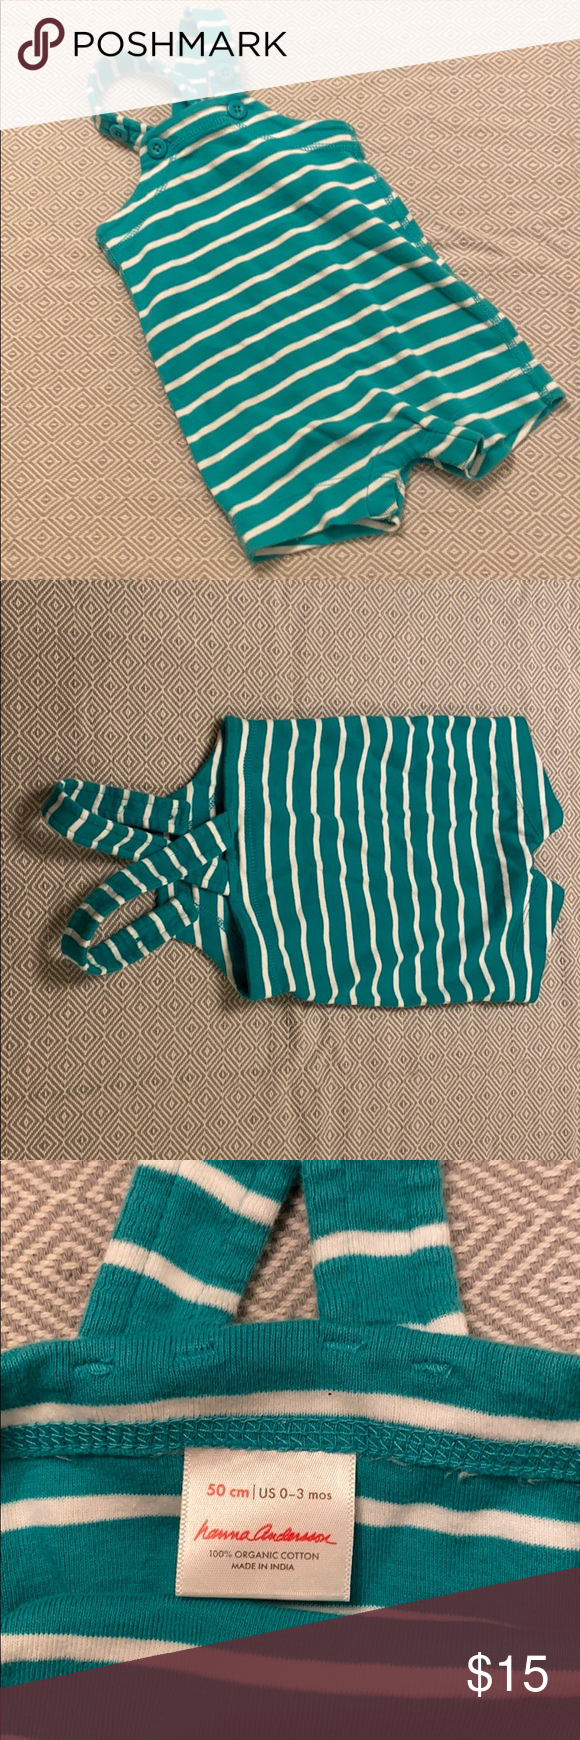 Hanna Andersson Shorts Romper / Shortalls Teal and white Hanna Andersson shorts romper / shortalls in size 0-3. Perfect for your little one's first Spring Break! 100% SOFT wonderful cotton. Washed once but never worn — unfortunately our little one wasn't the right size at the right time of year. Hanna Andersson One Pieces #Spring Break outfits shorts Source by karinschmid0592 #shortalls outfit women